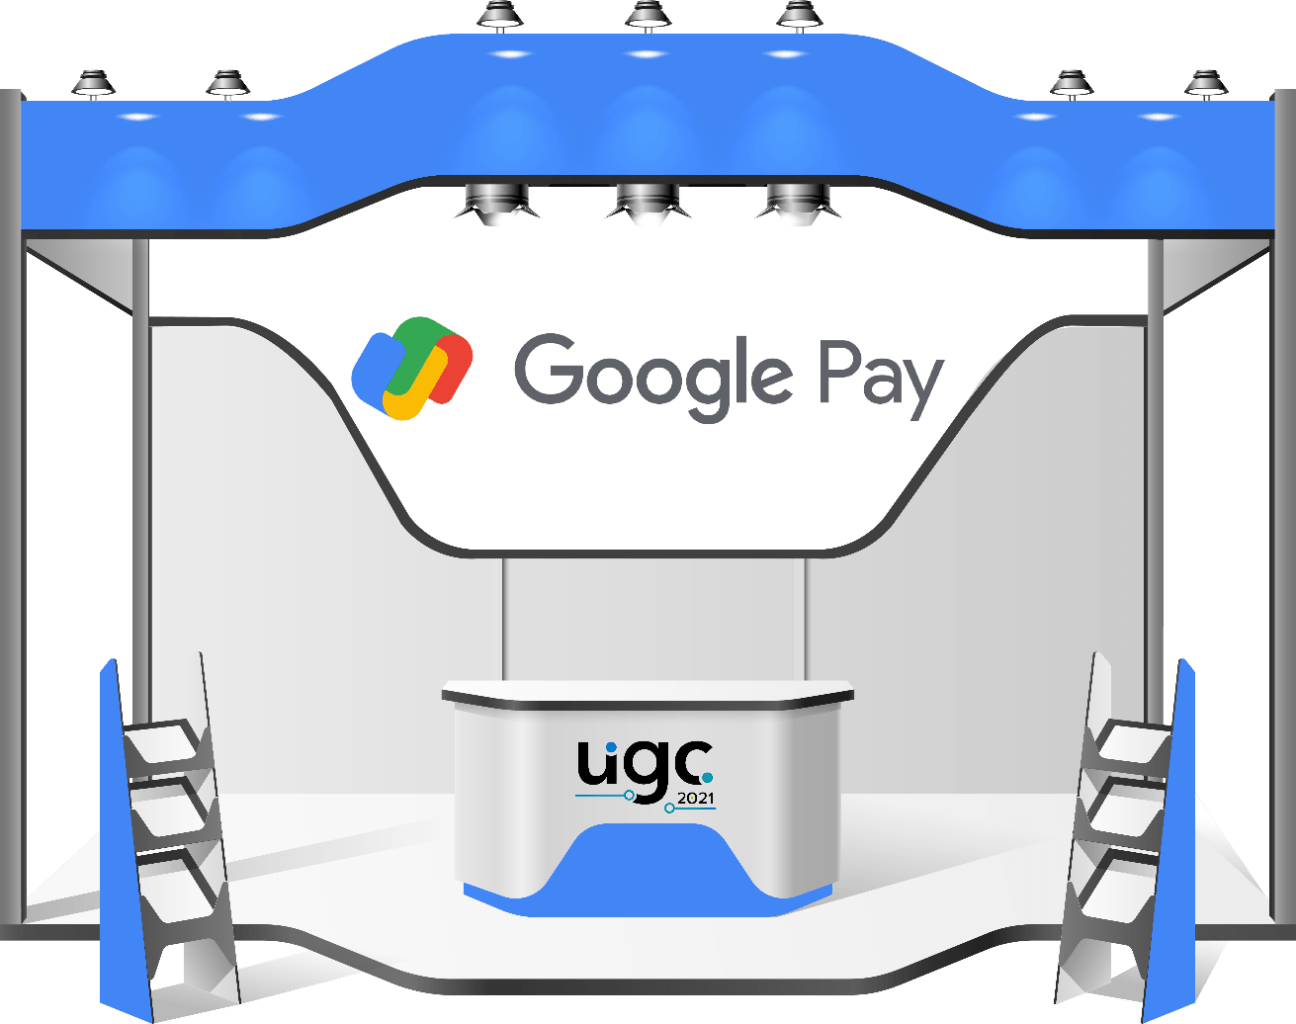 Visit the Google Play Booth